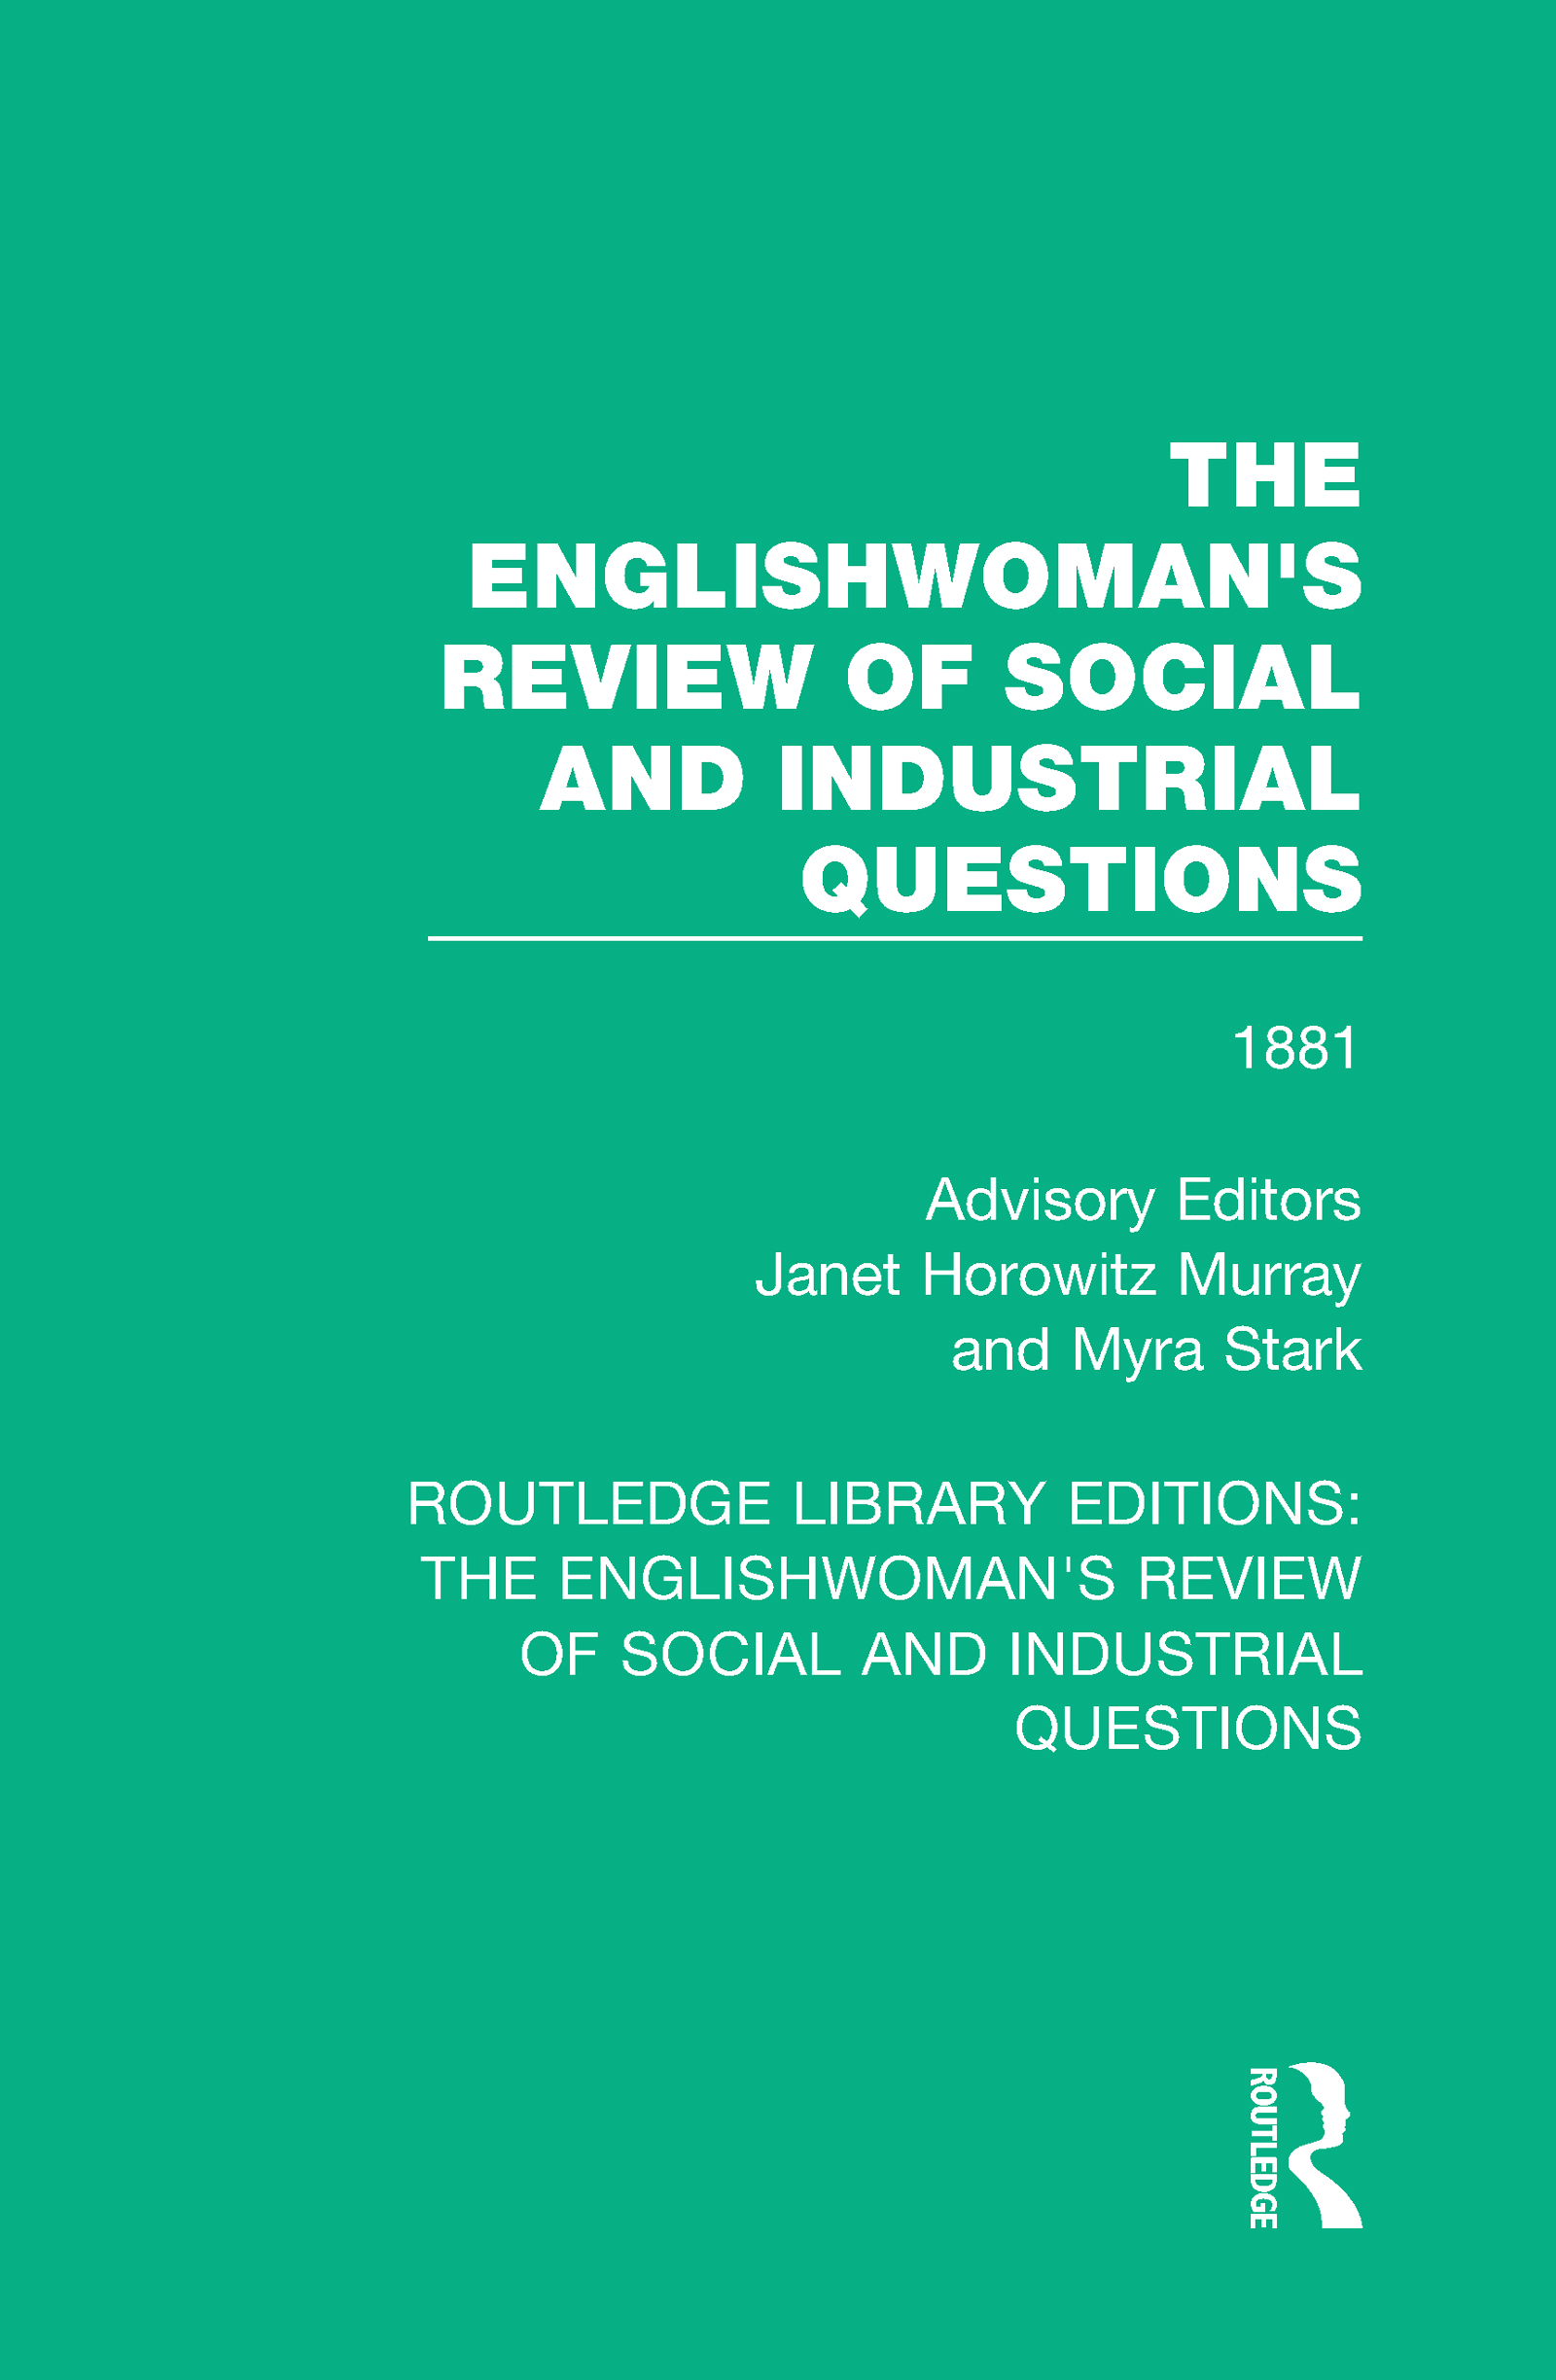 The Englishwoman's Review of Social and Industrial Questions: 1881 book cover